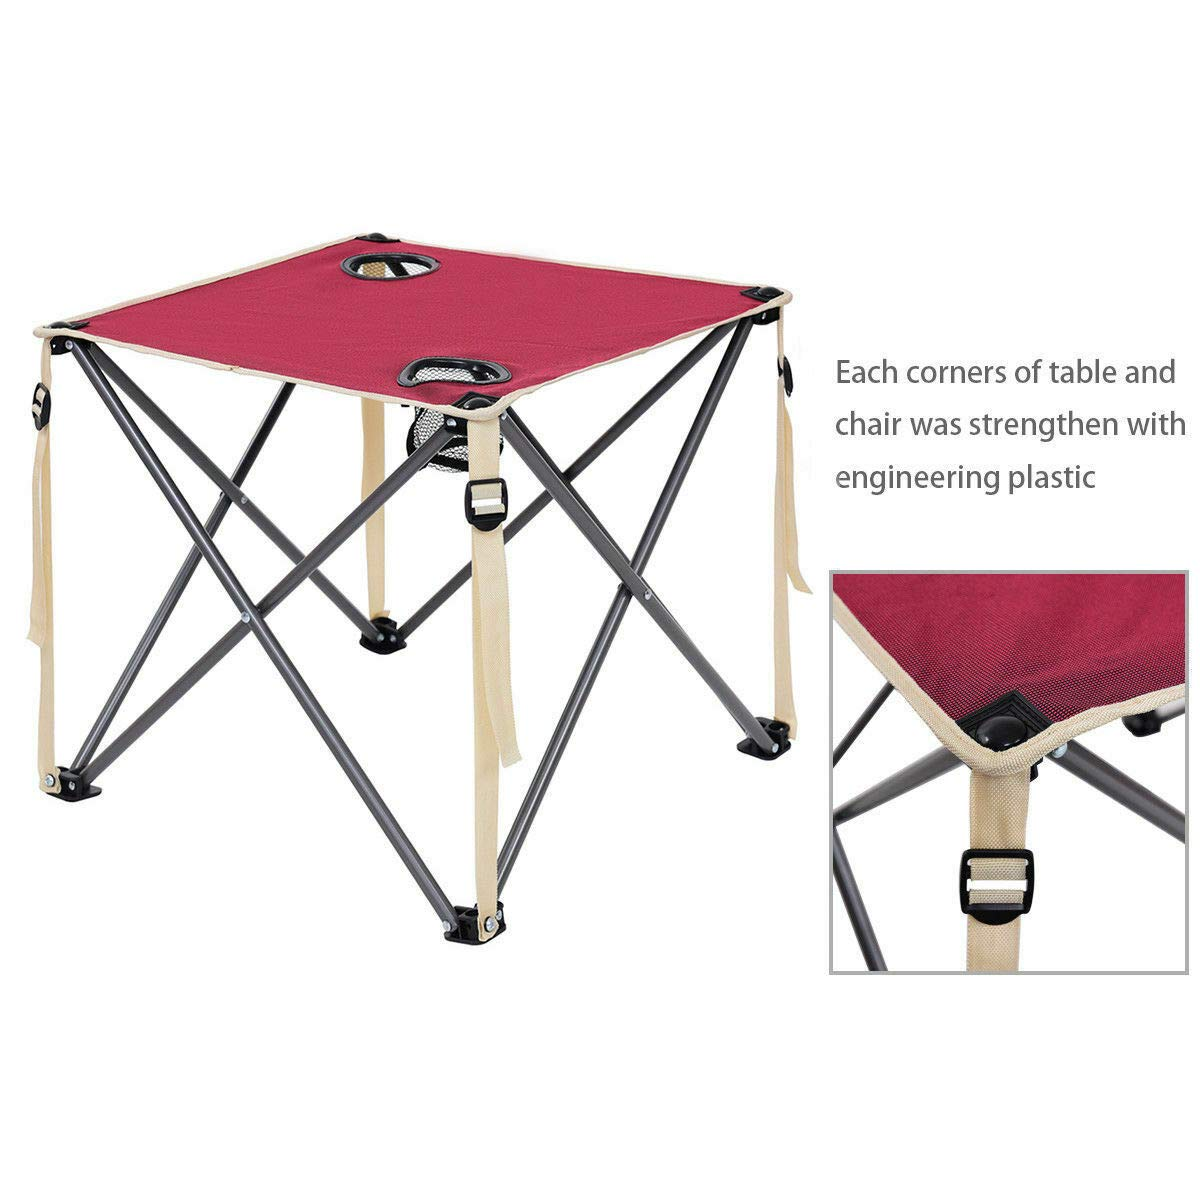 ANA Store Vacations Cookout Party Curl Stand Metal Iron Stell Frame Red Oxford Fabric Portable Folding Table Chairs Set Inside Outside Camp Beach Picnic with Carrying Bag by ANA Store (Image #8)